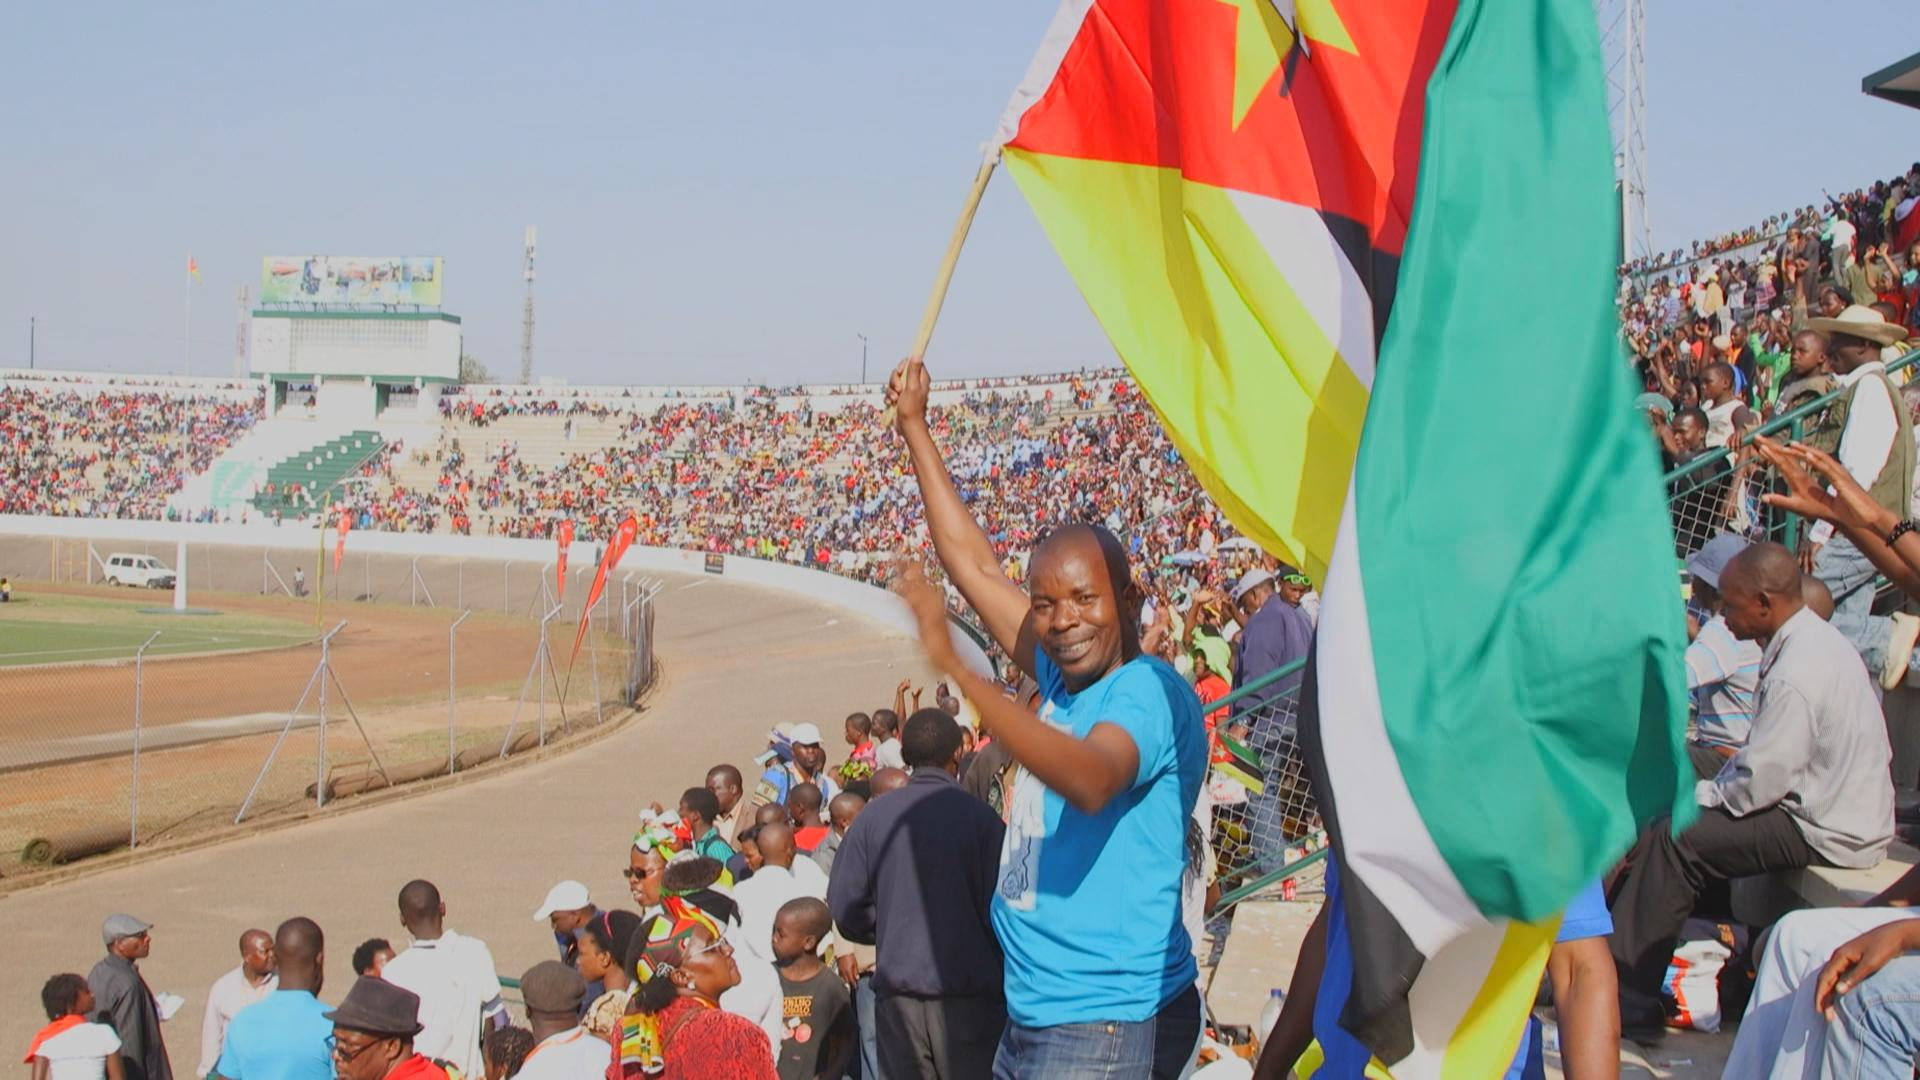 Mozambicans celebrating and enjoying 40 years of independence in an open stadium